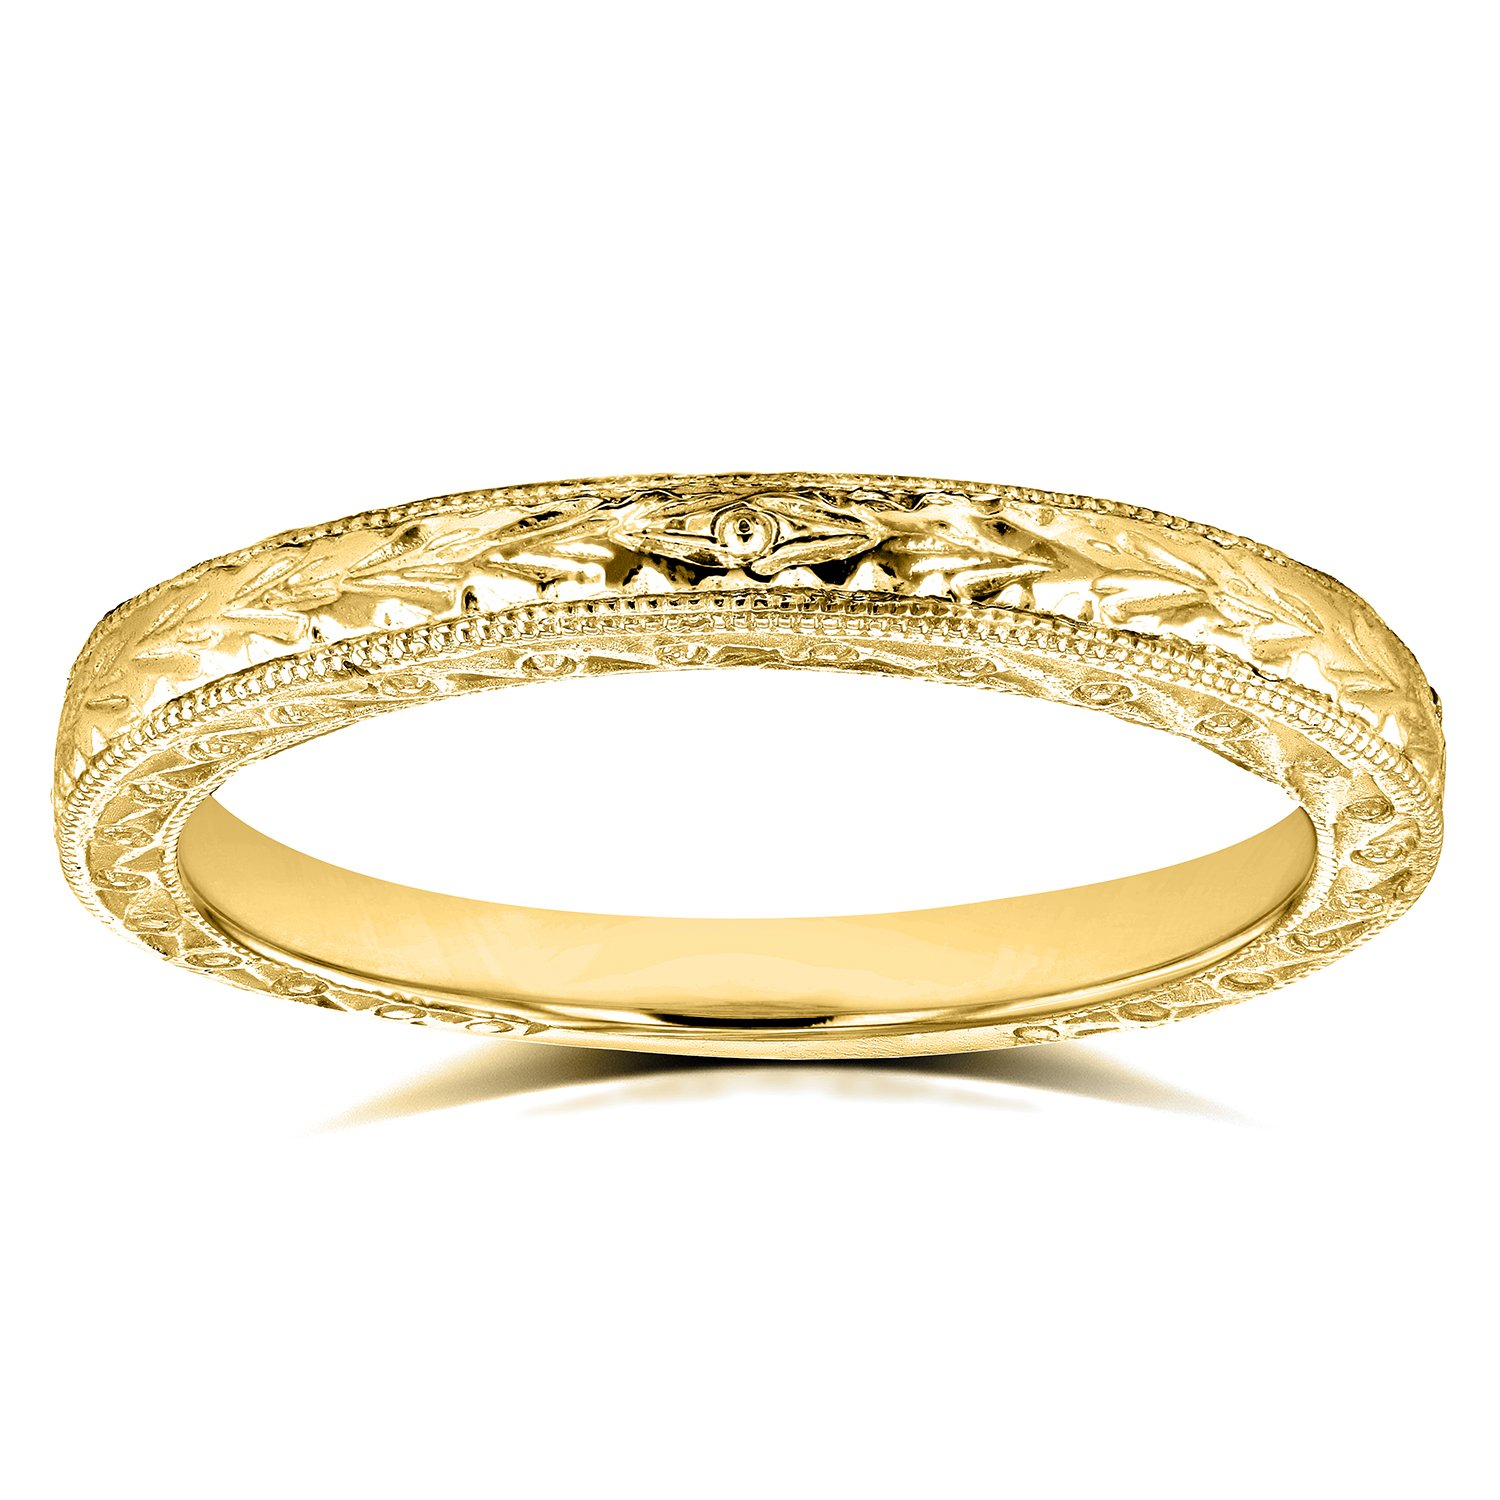 Antique Engravings Wedding Band in 14k Yellow Gold, Size 6